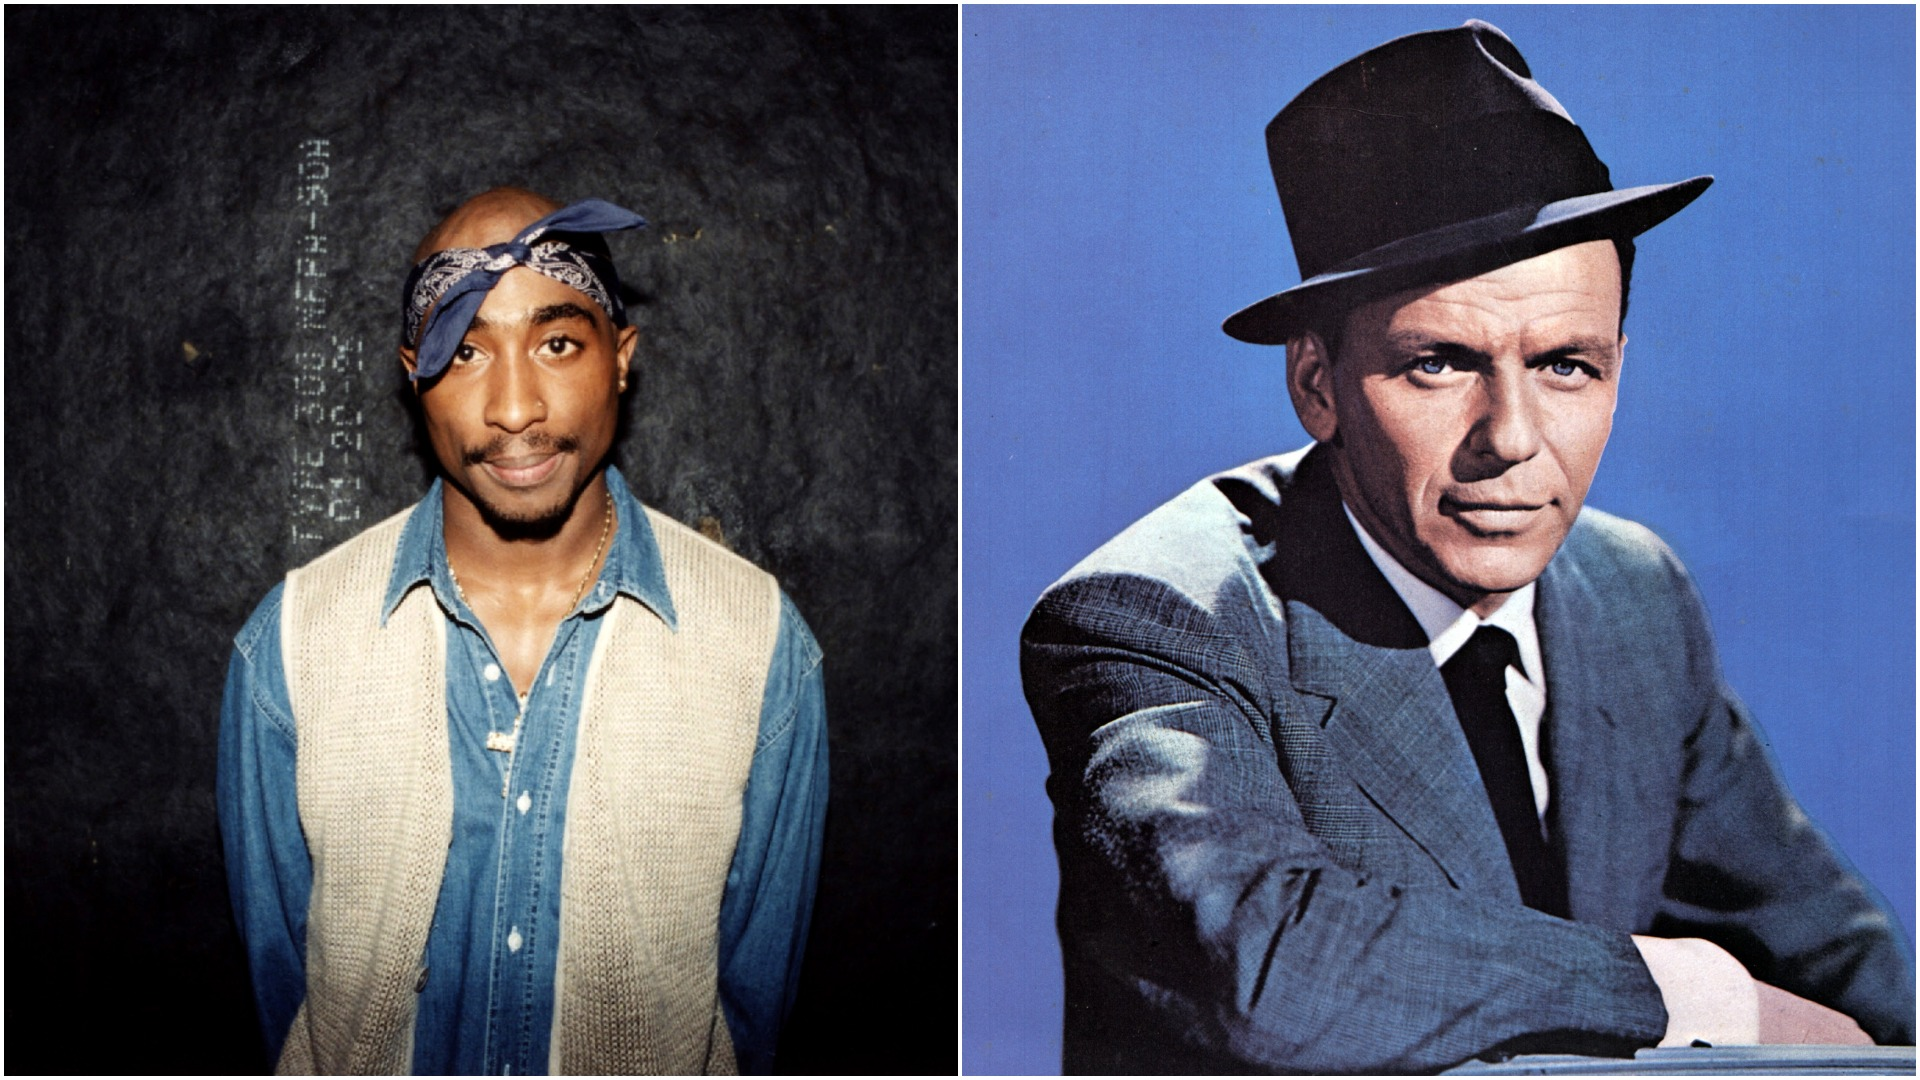 Jun 22, 2021 · frank sinatra was a singer and actor who often associated himself with the members of the rat pack, a group which included contemporaries dean martin and sammy davis, jr.the death of the man known. Tupac Shakur Said 1 Frank Sinatra Song Was Too Beautiful To Mess With